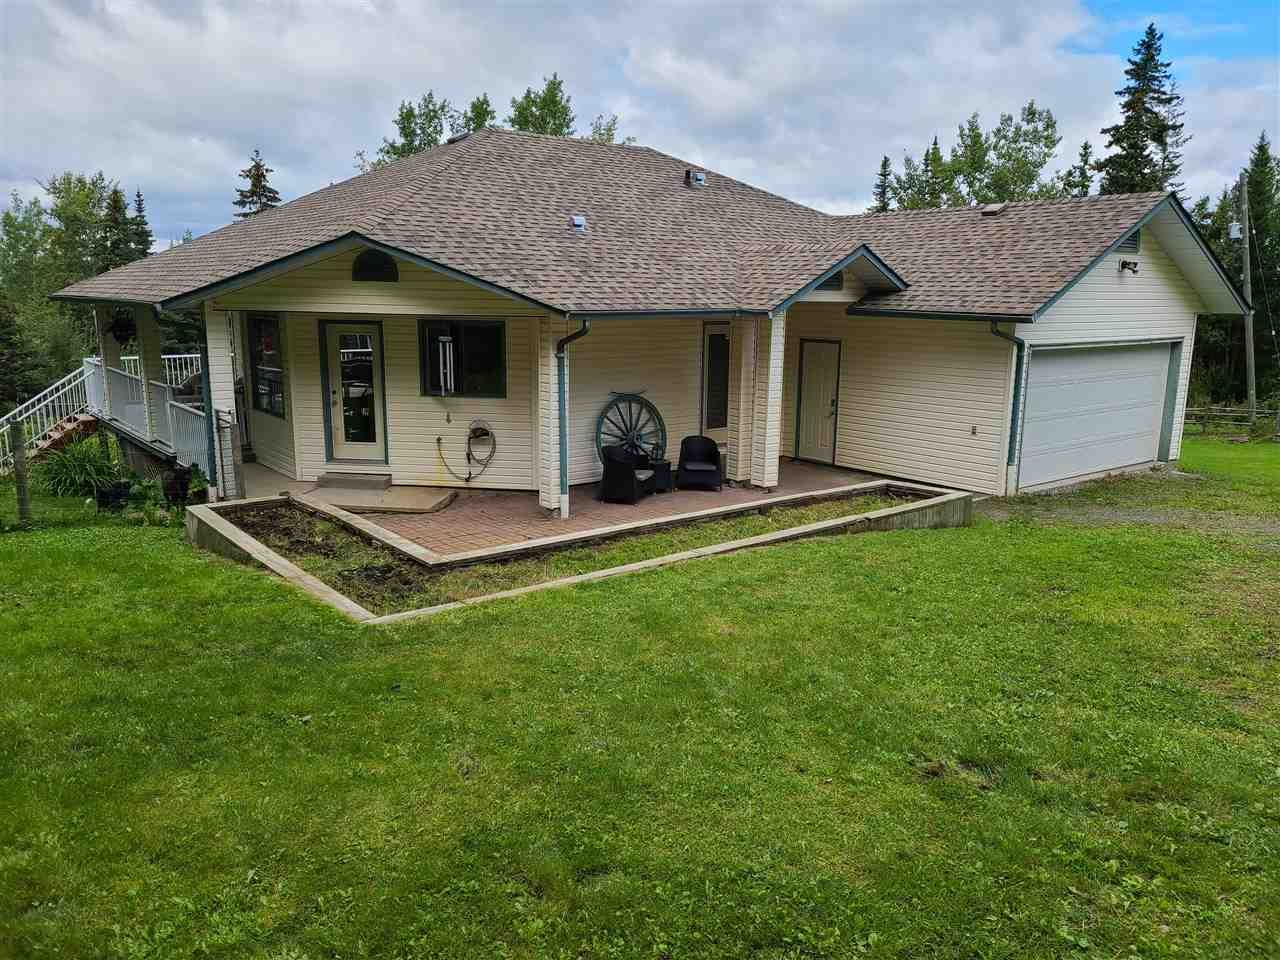 Main Photo: 895 LEGAULT Road in Prince George: Tabor Lake House for sale (PG Rural East (Zone 80))  : MLS®# R2493650